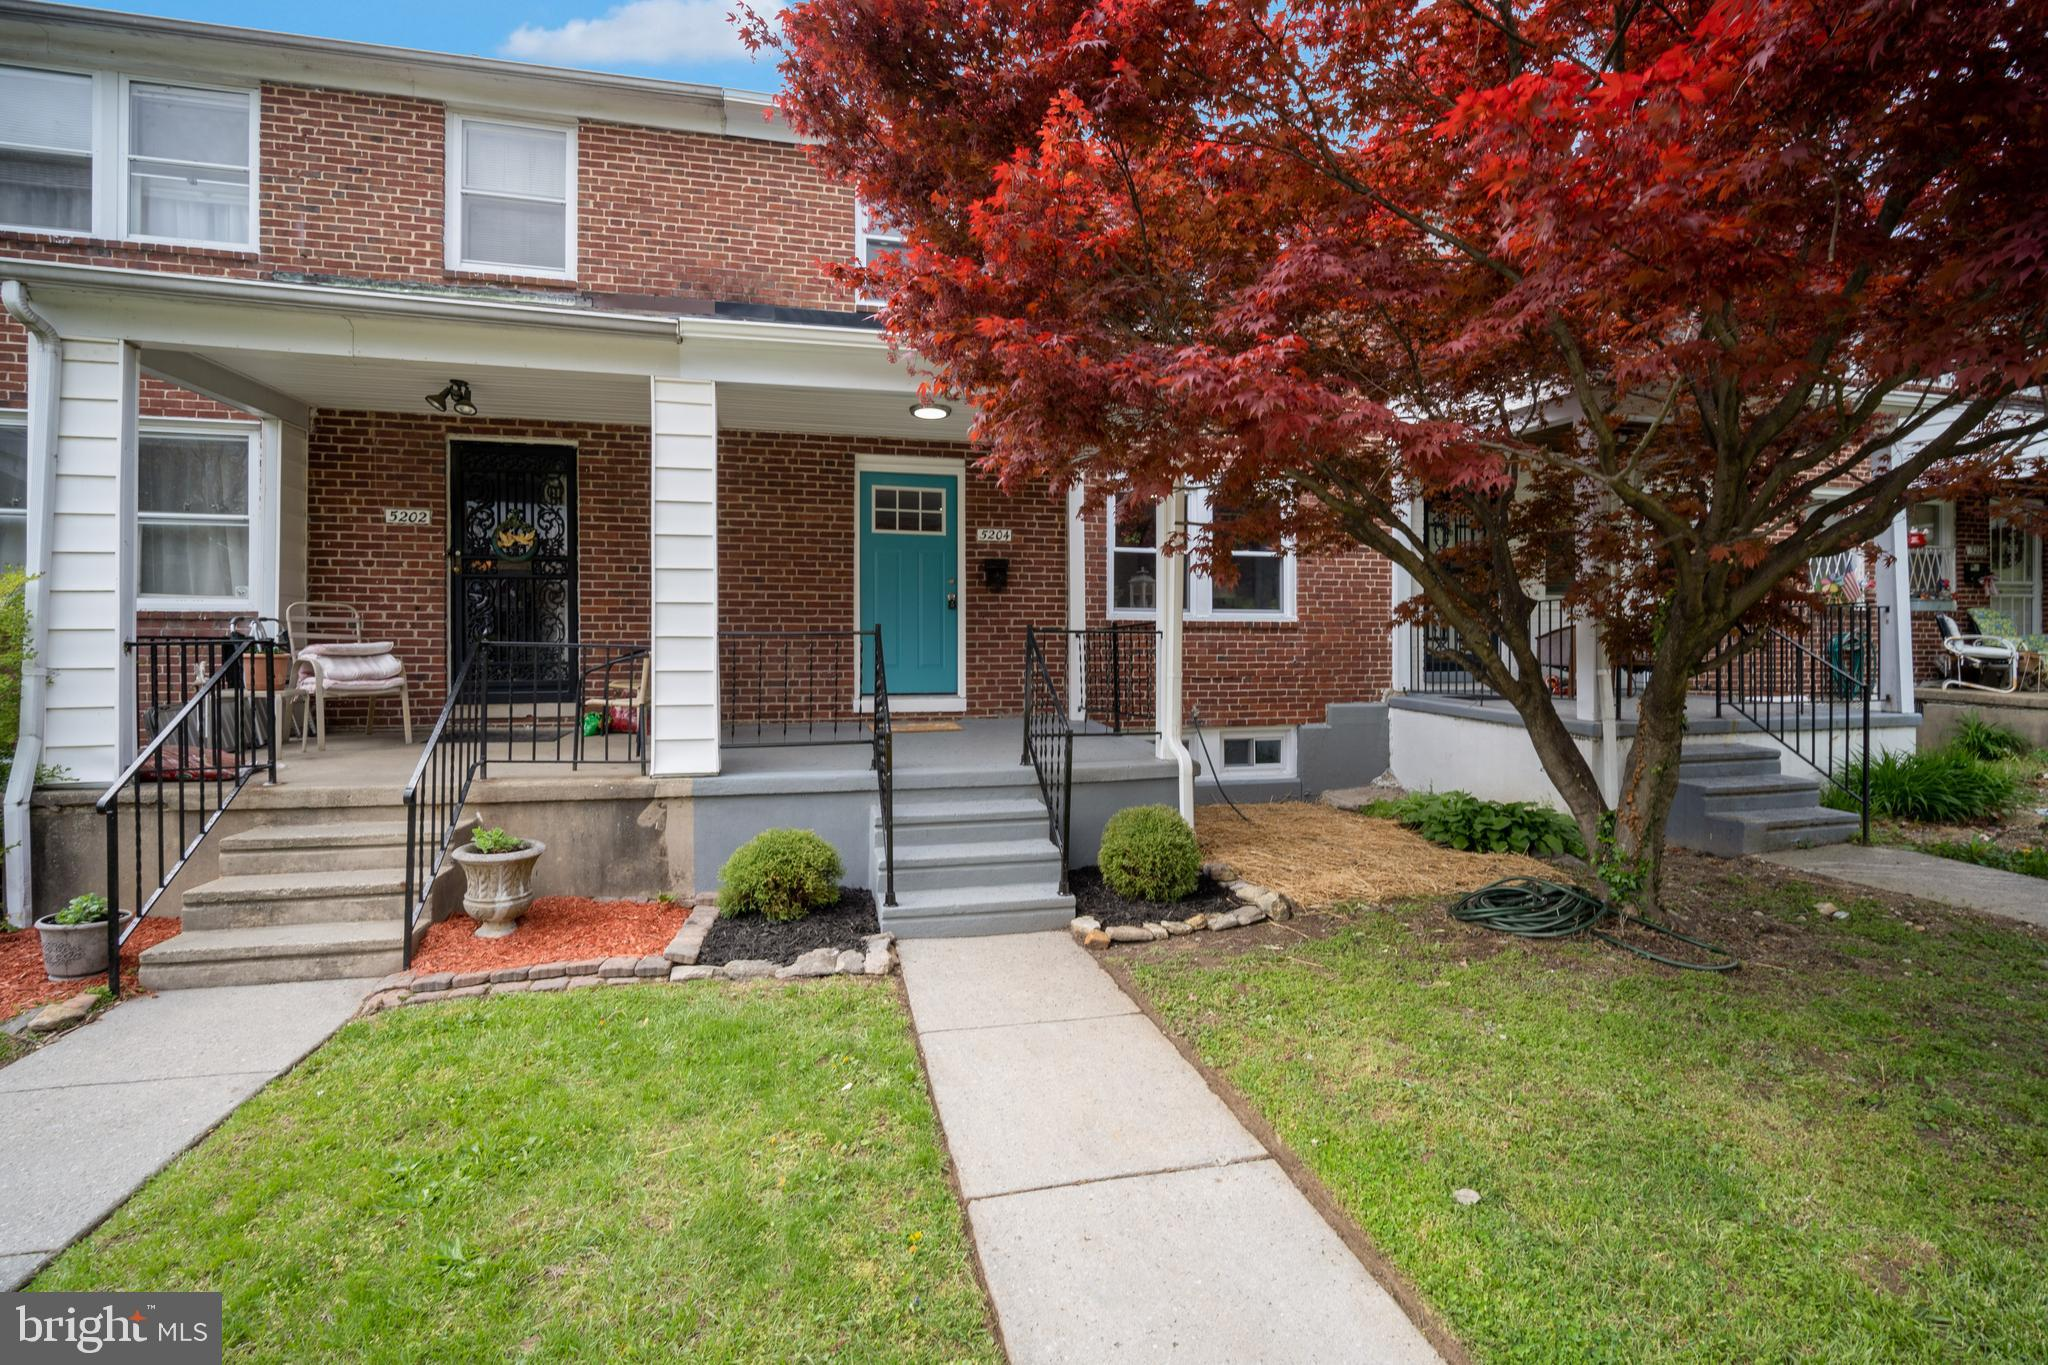 Beautiful 3 Br 2Ba town home With open floor plan * Fully finished basement * New doors * New Windows * New roof * New kitchen with granite counters, Island, stainless steel appliances,self closing cabinets * Recessed lights * New carpet * Freshly painted * New HVAC & Water heater * Beautifully remodeled bathrooms * New flooring thru out the house  and so much more all in well sought after area. ( All PERMITS WERE PULLED)